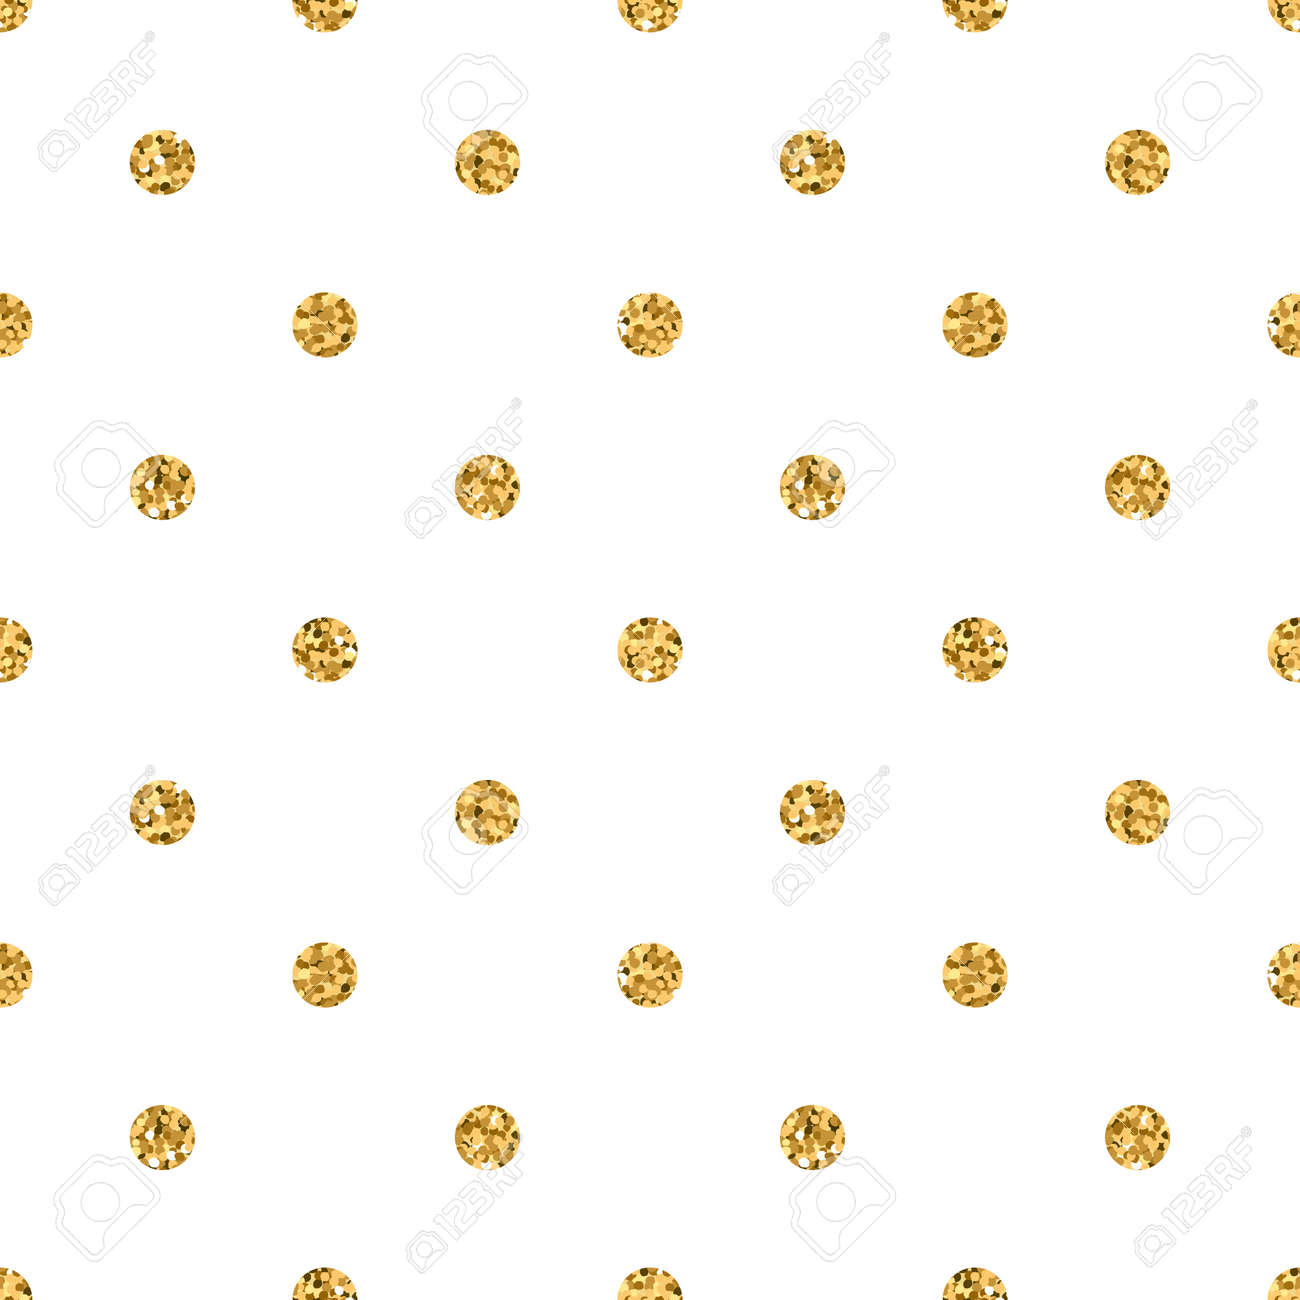 Polka Dots Seamless Pattern Gold Glitter And White Template Abstract Geometric Texture Golden